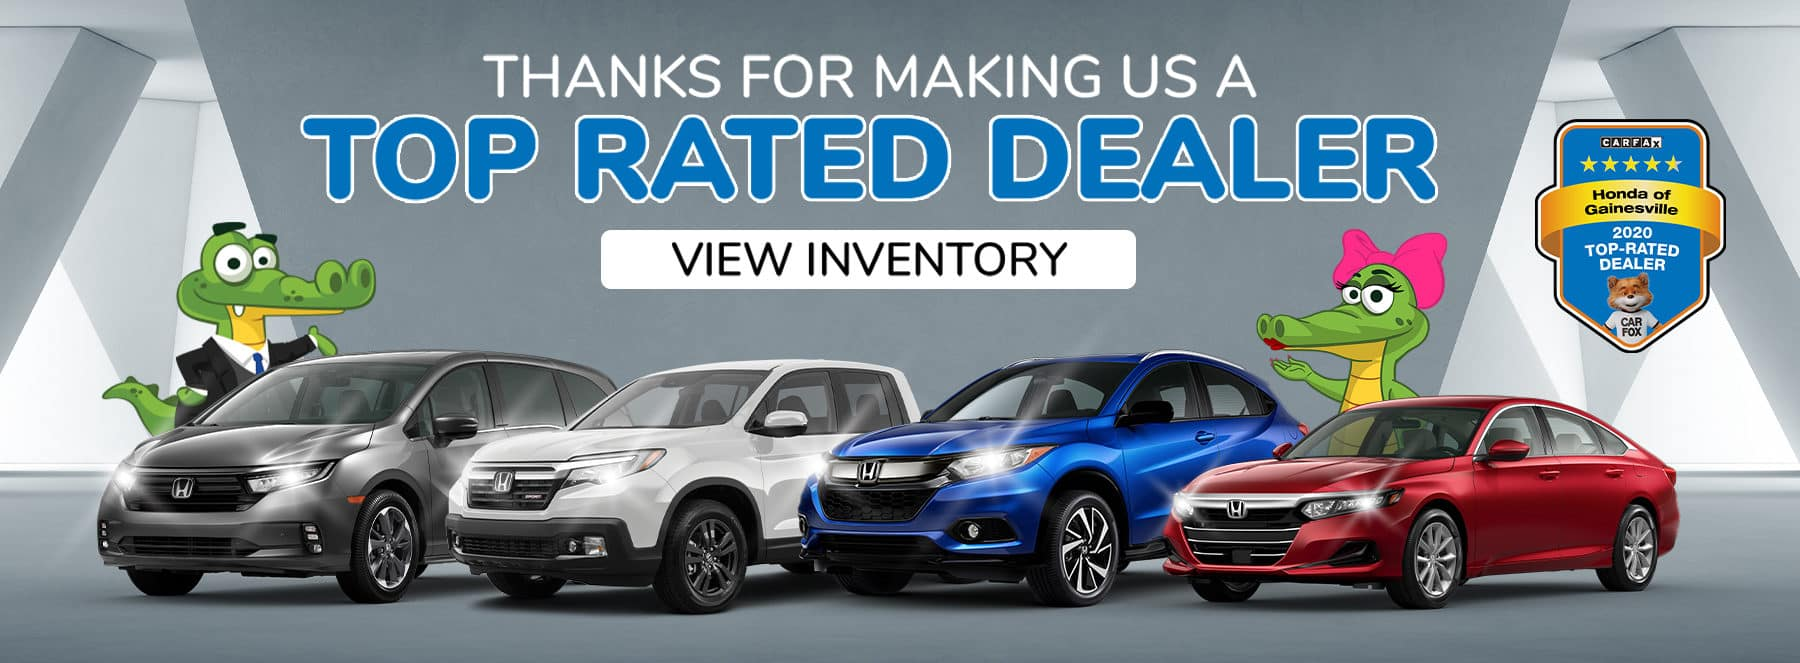 Thank You For Making Us A Top Rated Dealer - CarFax